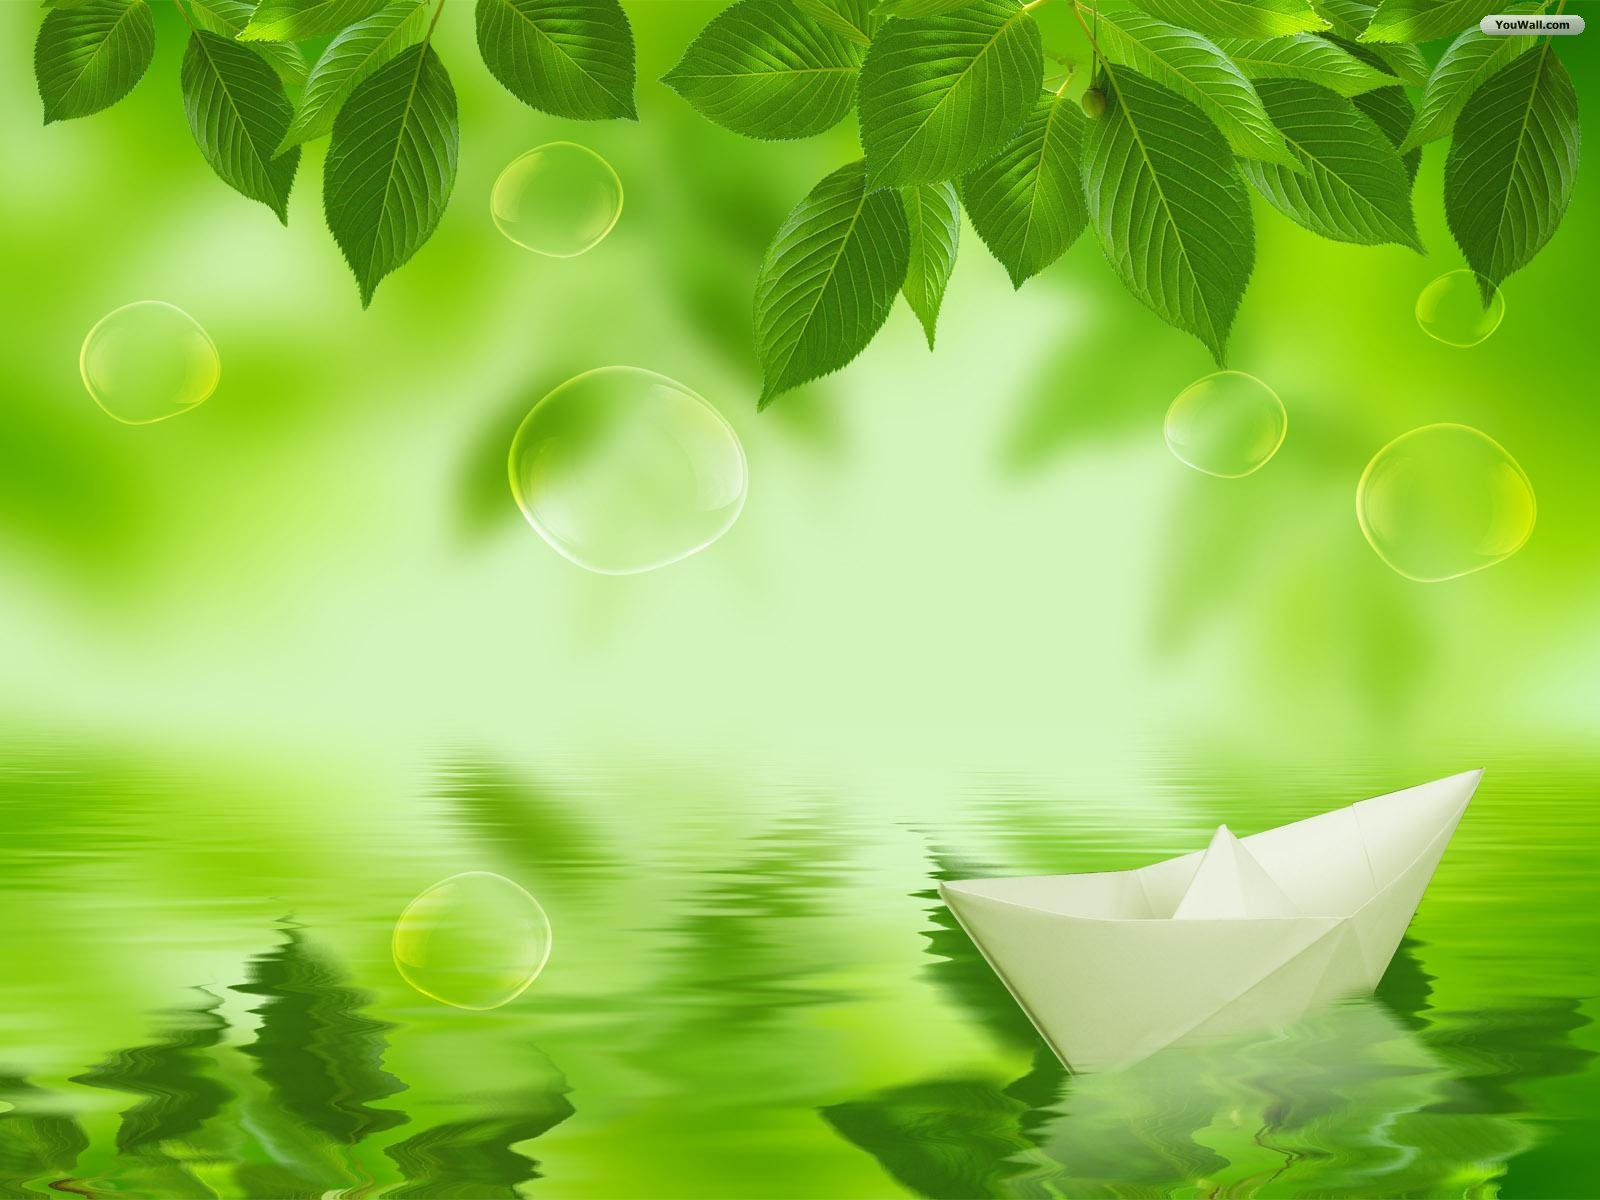 Green Leaves Wallpaper Backgrounds 1600x1200